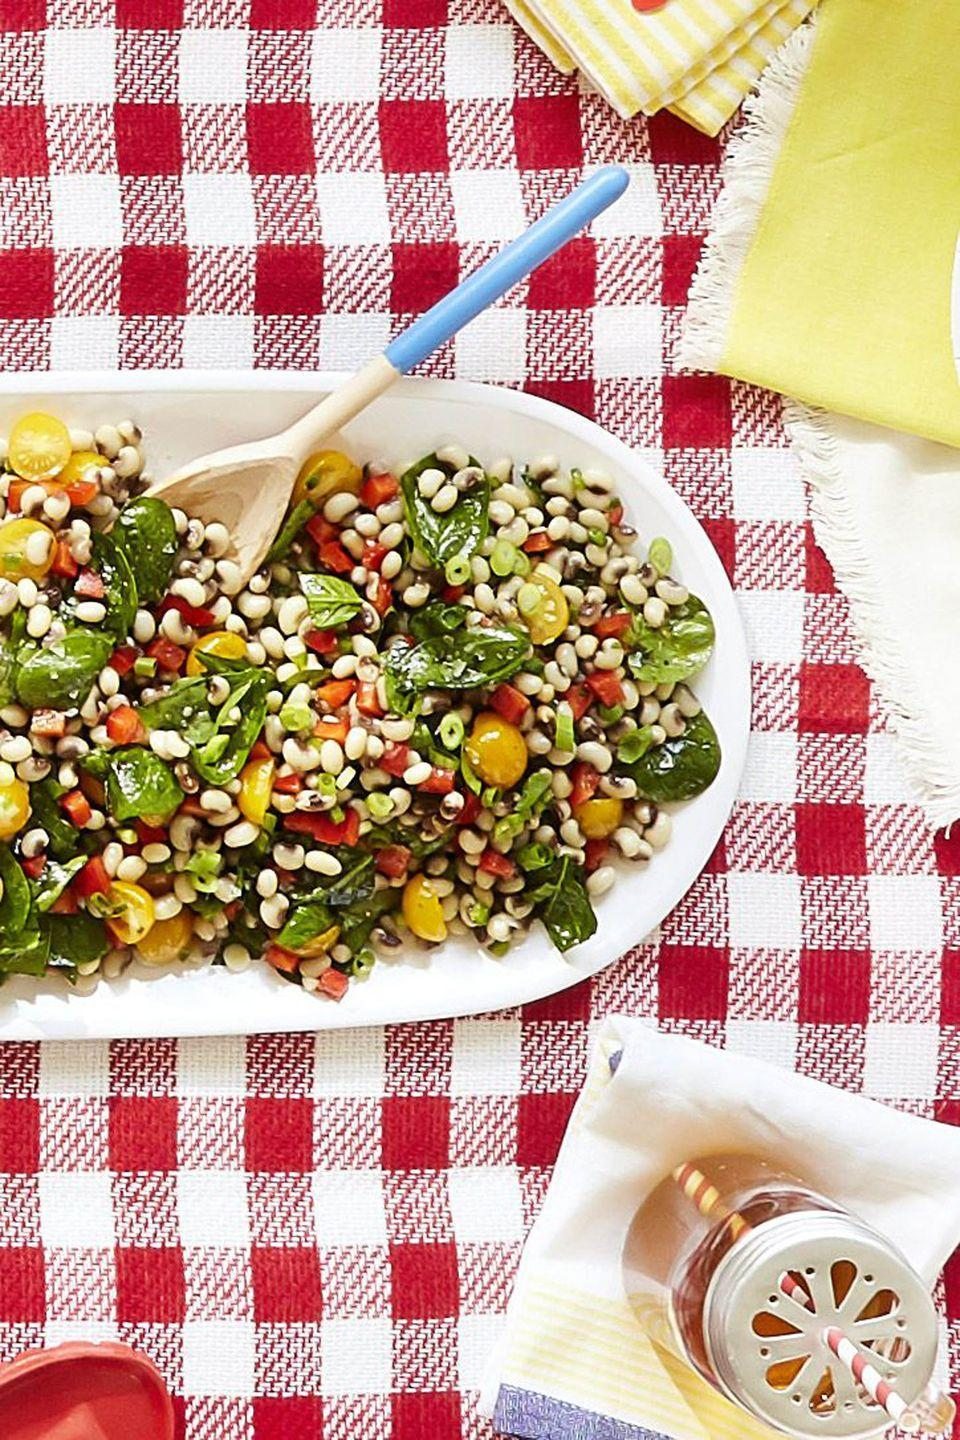 """<p>Get plenty of fiber with a crunchy salad filled with fresh vegetables.</p><p><strong><a href=""""https://www.countryliving.com/food-drinks/recipes/a42429/fresh-black-eyed-peas-salad-recipe/"""" rel=""""nofollow noopener"""" target=""""_blank"""" data-ylk=""""slk:Get the recipe"""" class=""""link rapid-noclick-resp"""">Get the recipe</a>.</strong></p><p><a class=""""link rapid-noclick-resp"""" href=""""https://www.amazon.com/Redecker-Oiled-Olive-Serving-8-Inches/dp/B01MCTSZJJ/?tag=syn-yahoo-20&ascsubtag=%5Bartid%7C10050.g.3290%5Bsrc%7Cyahoo-us"""" rel=""""nofollow noopener"""" target=""""_blank"""" data-ylk=""""slk:SHOP SERVING SPOONS"""">SHOP SERVING SPOONS</a> </p>"""